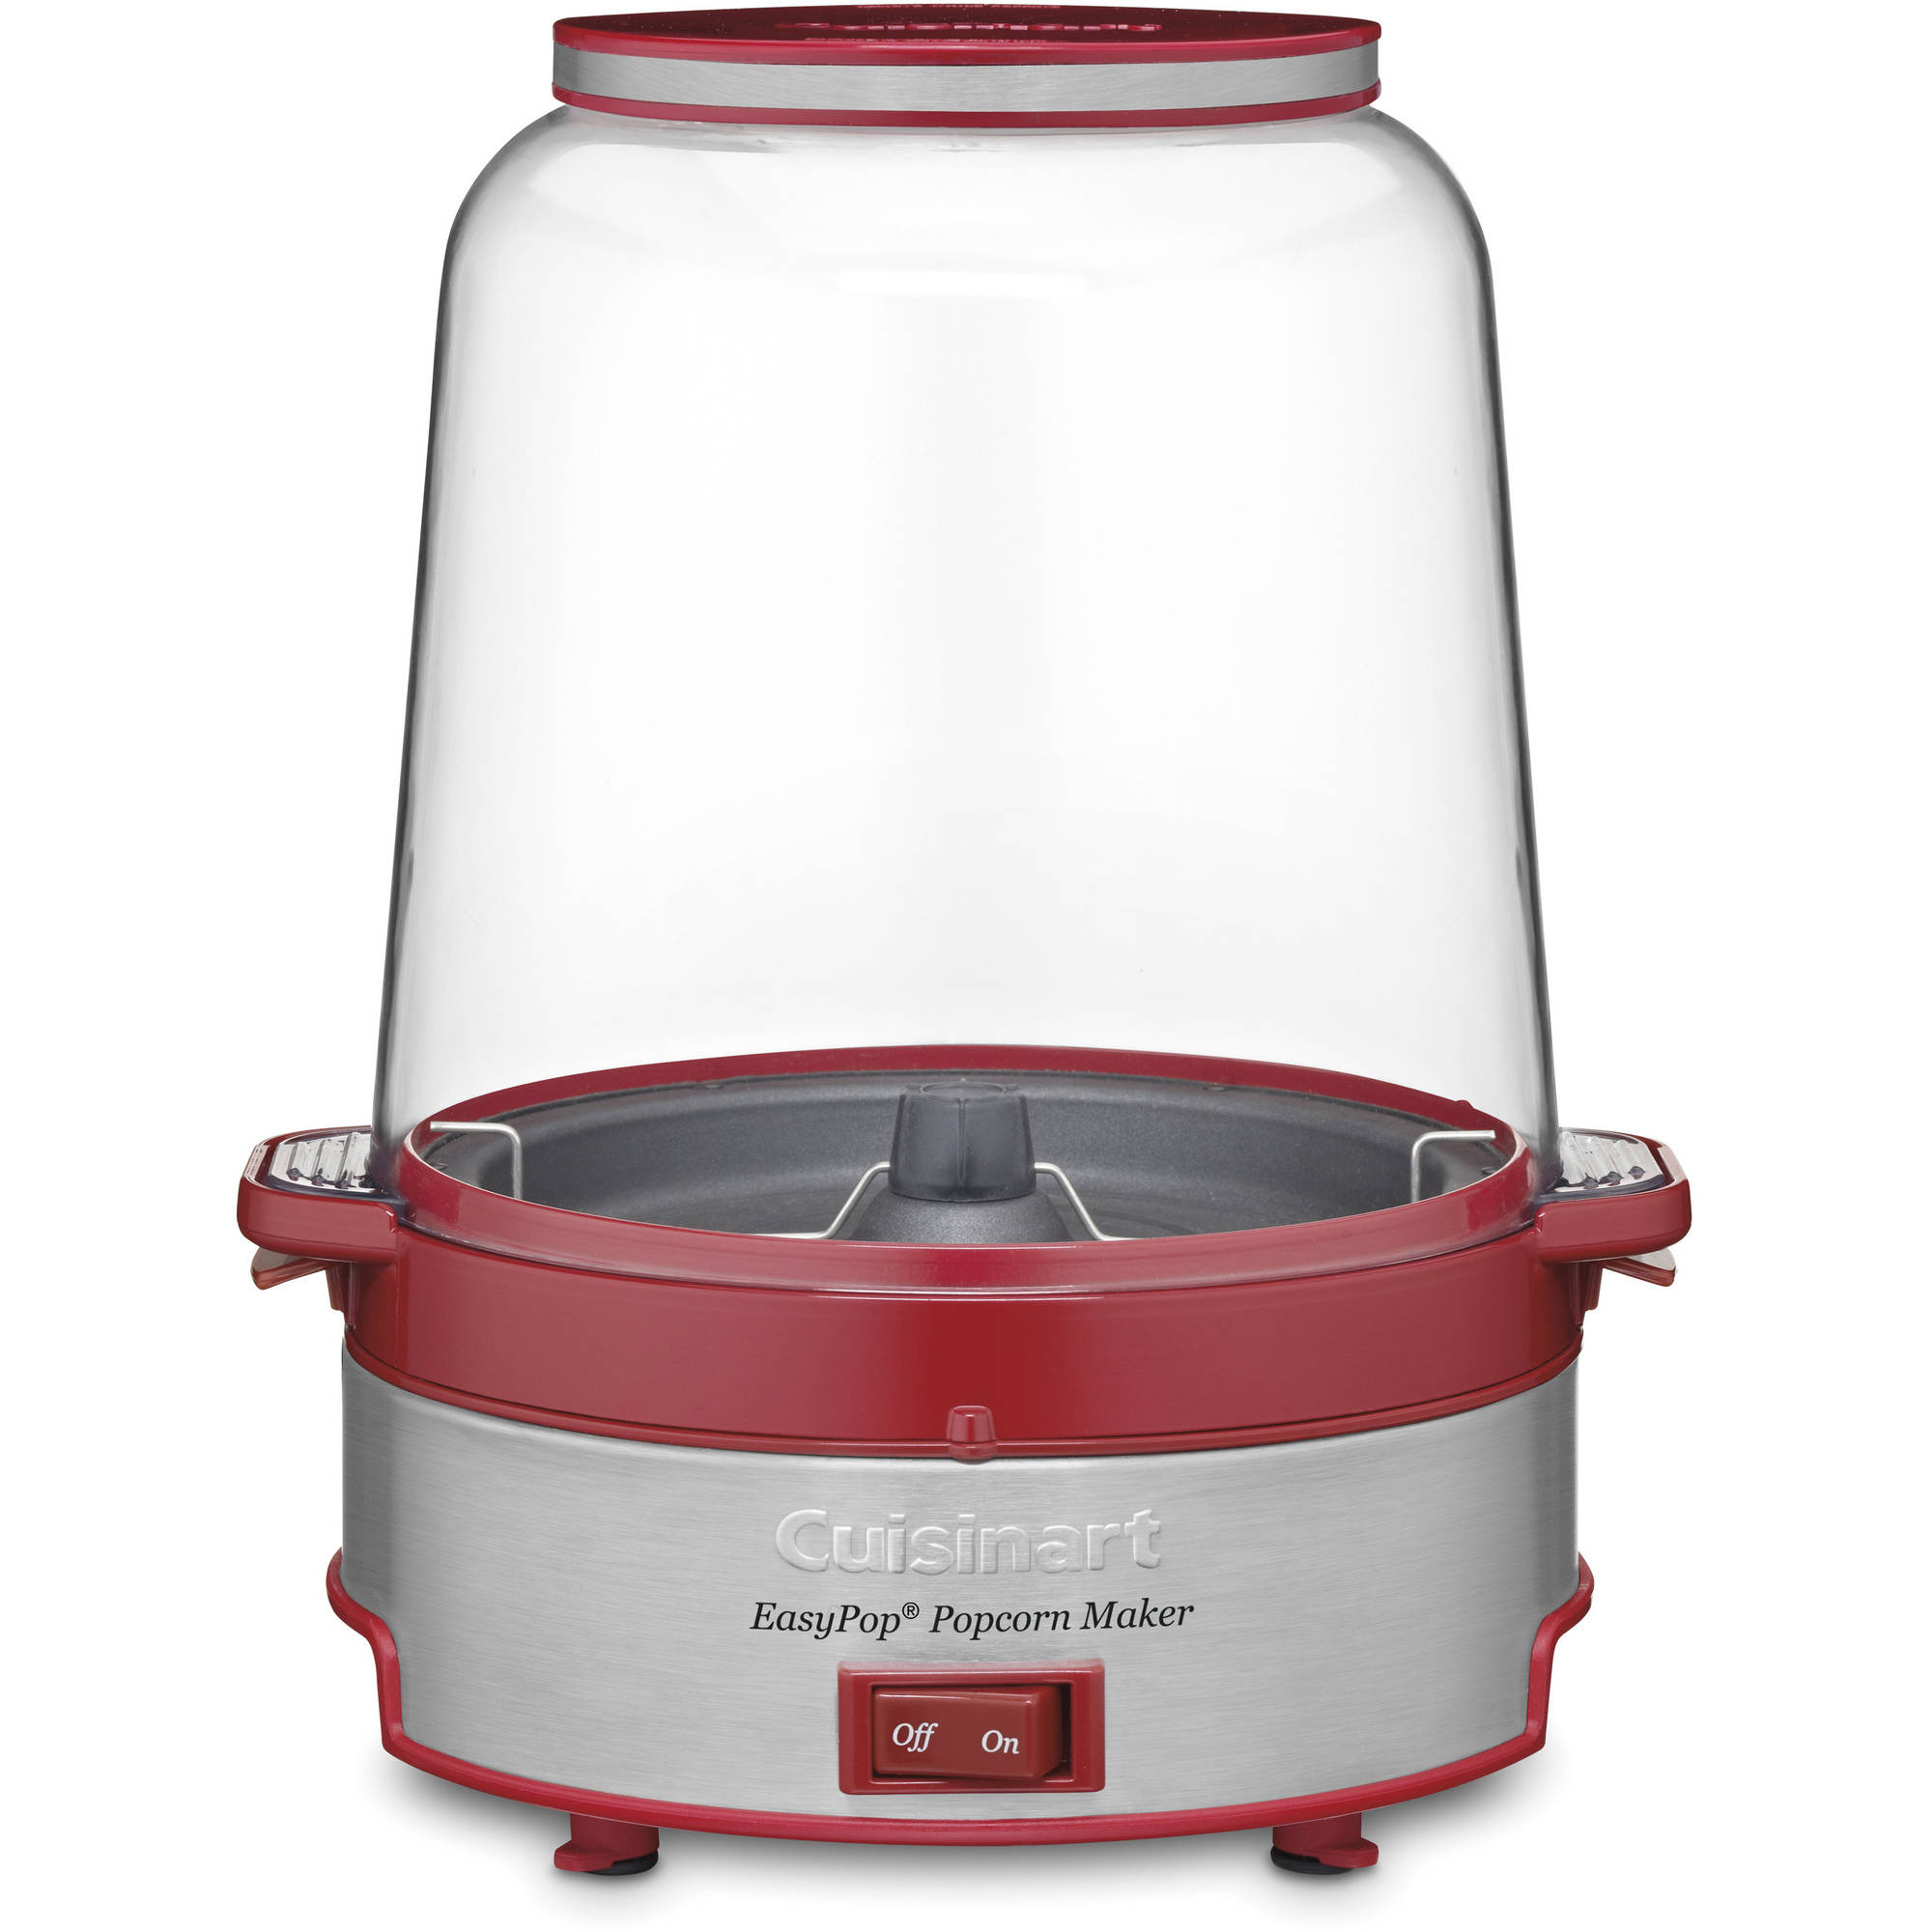 16 Cup Popcorn Maker, Red by Cuisinart